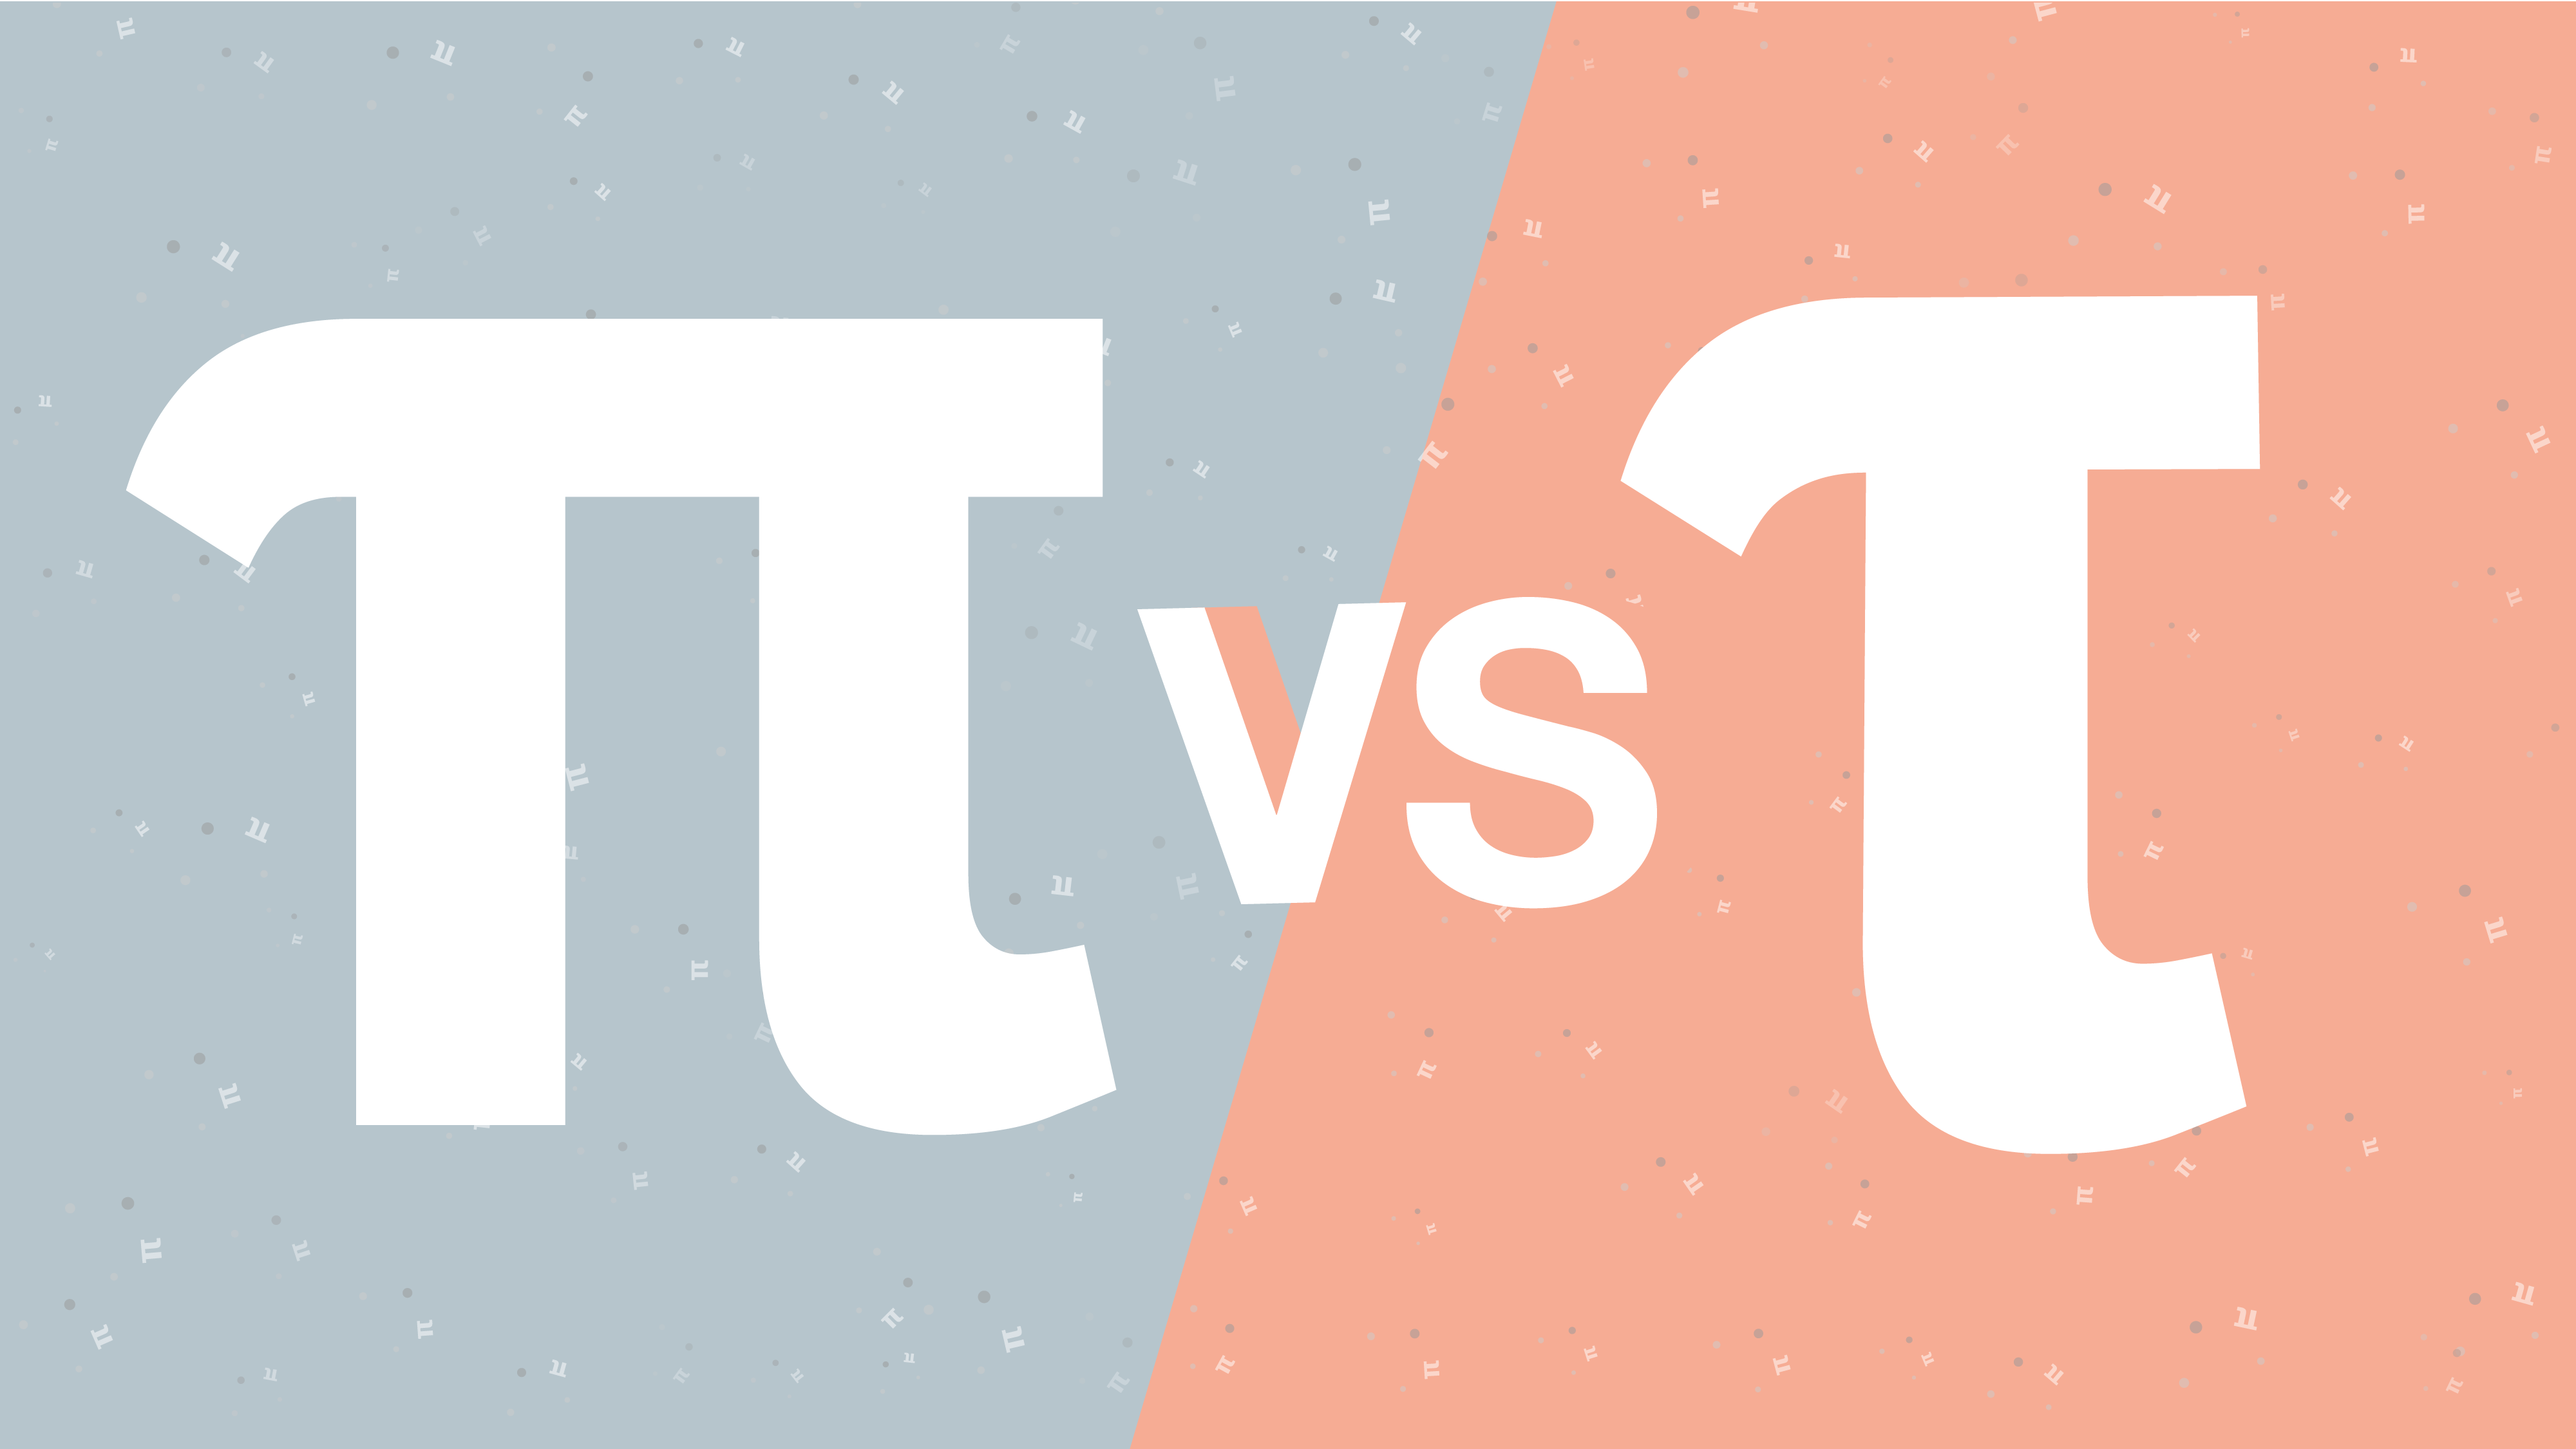 Pi versus Tau graphic